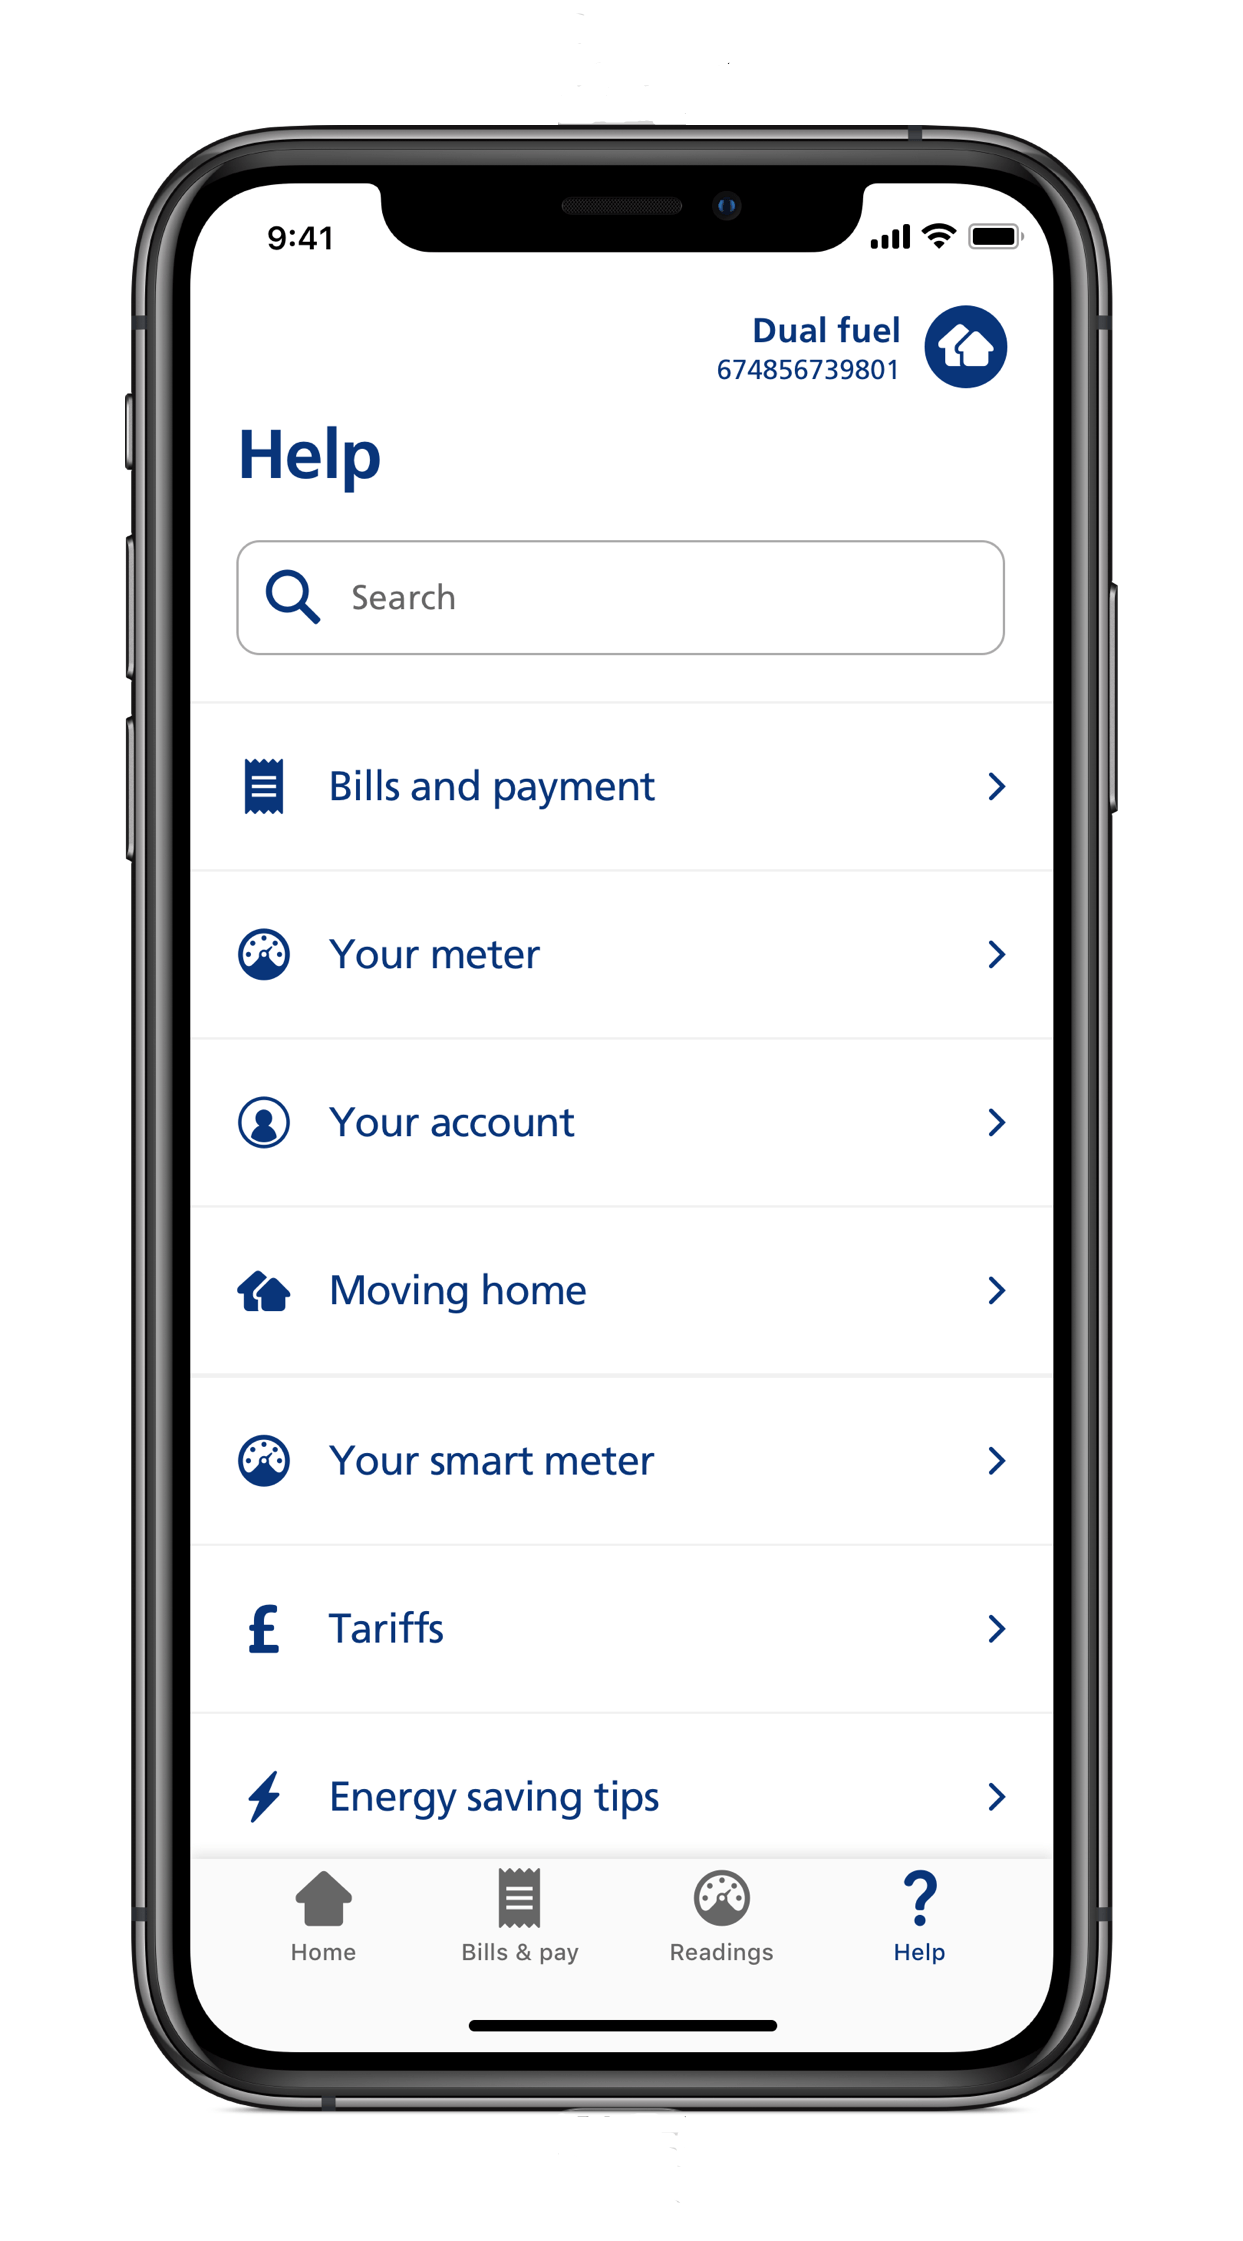 Screenshot of EDF mobile app showing the FAQ help section